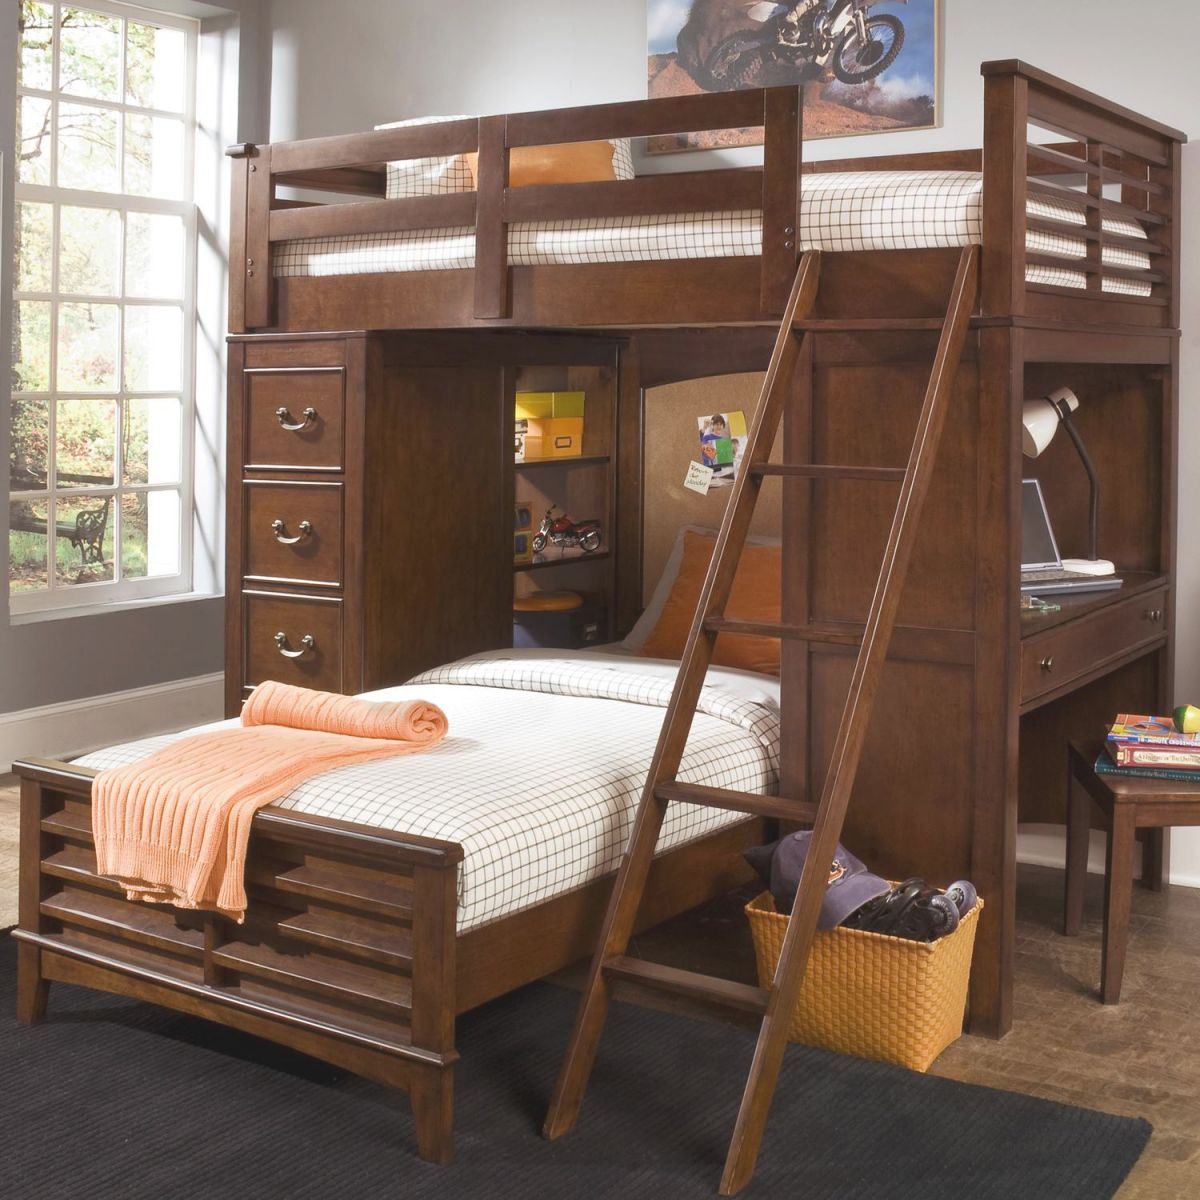 Chelsea Square Youth Twin Loft Bed Unit With Built-In Desk And Chest Freedom Furniture At Ruby Gordon Home with regard to Bedroom Set With Desk